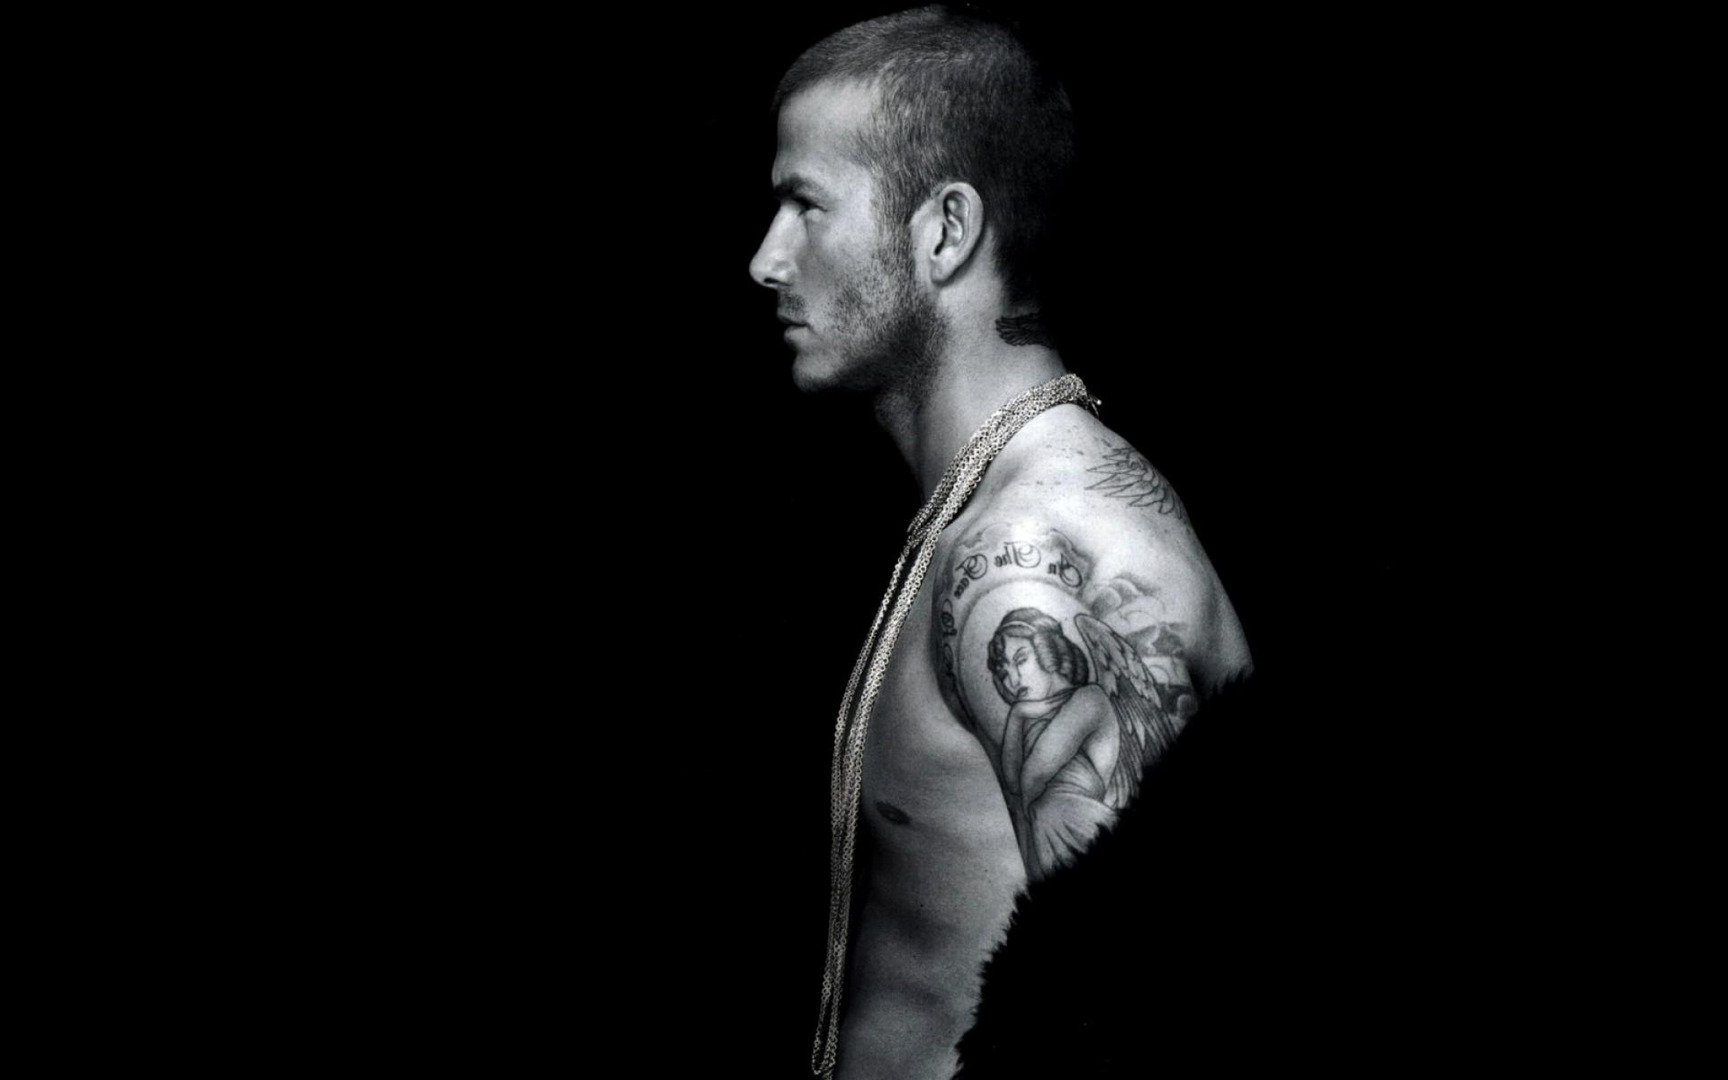 David Beckham Wallpapers   Wallpaper High Definition High Quality 1728x1080